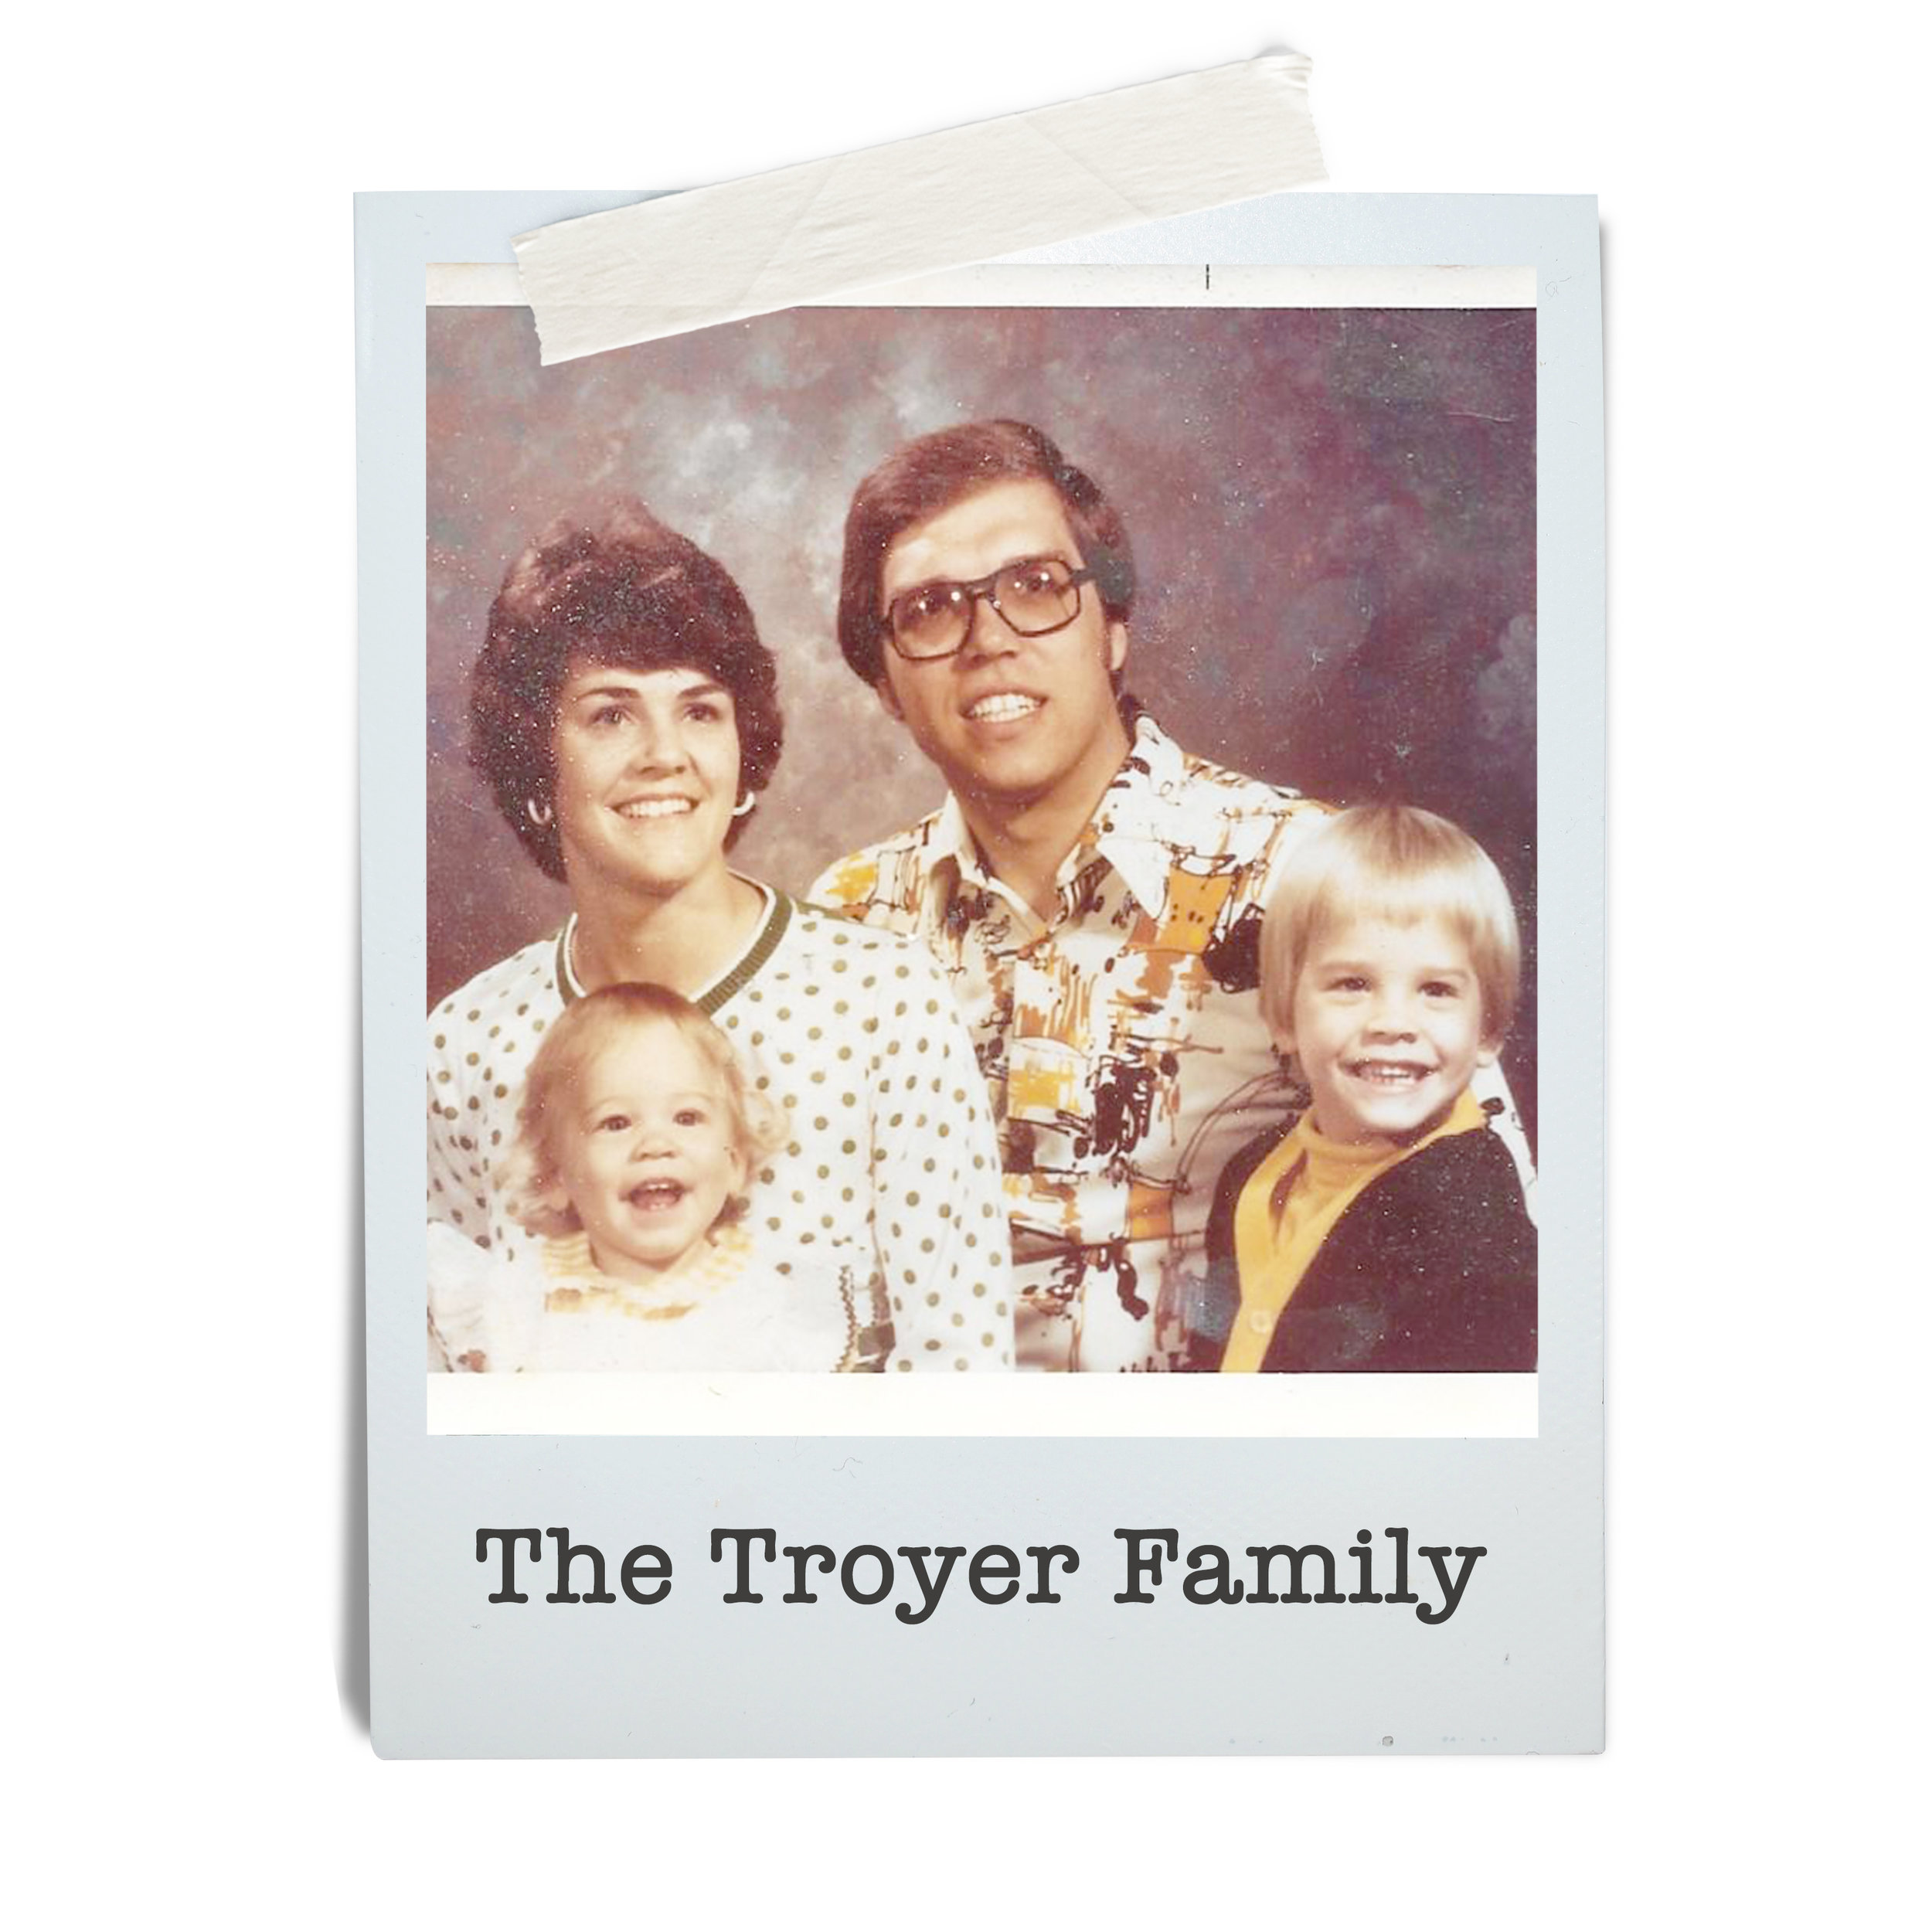 The Troyer Family